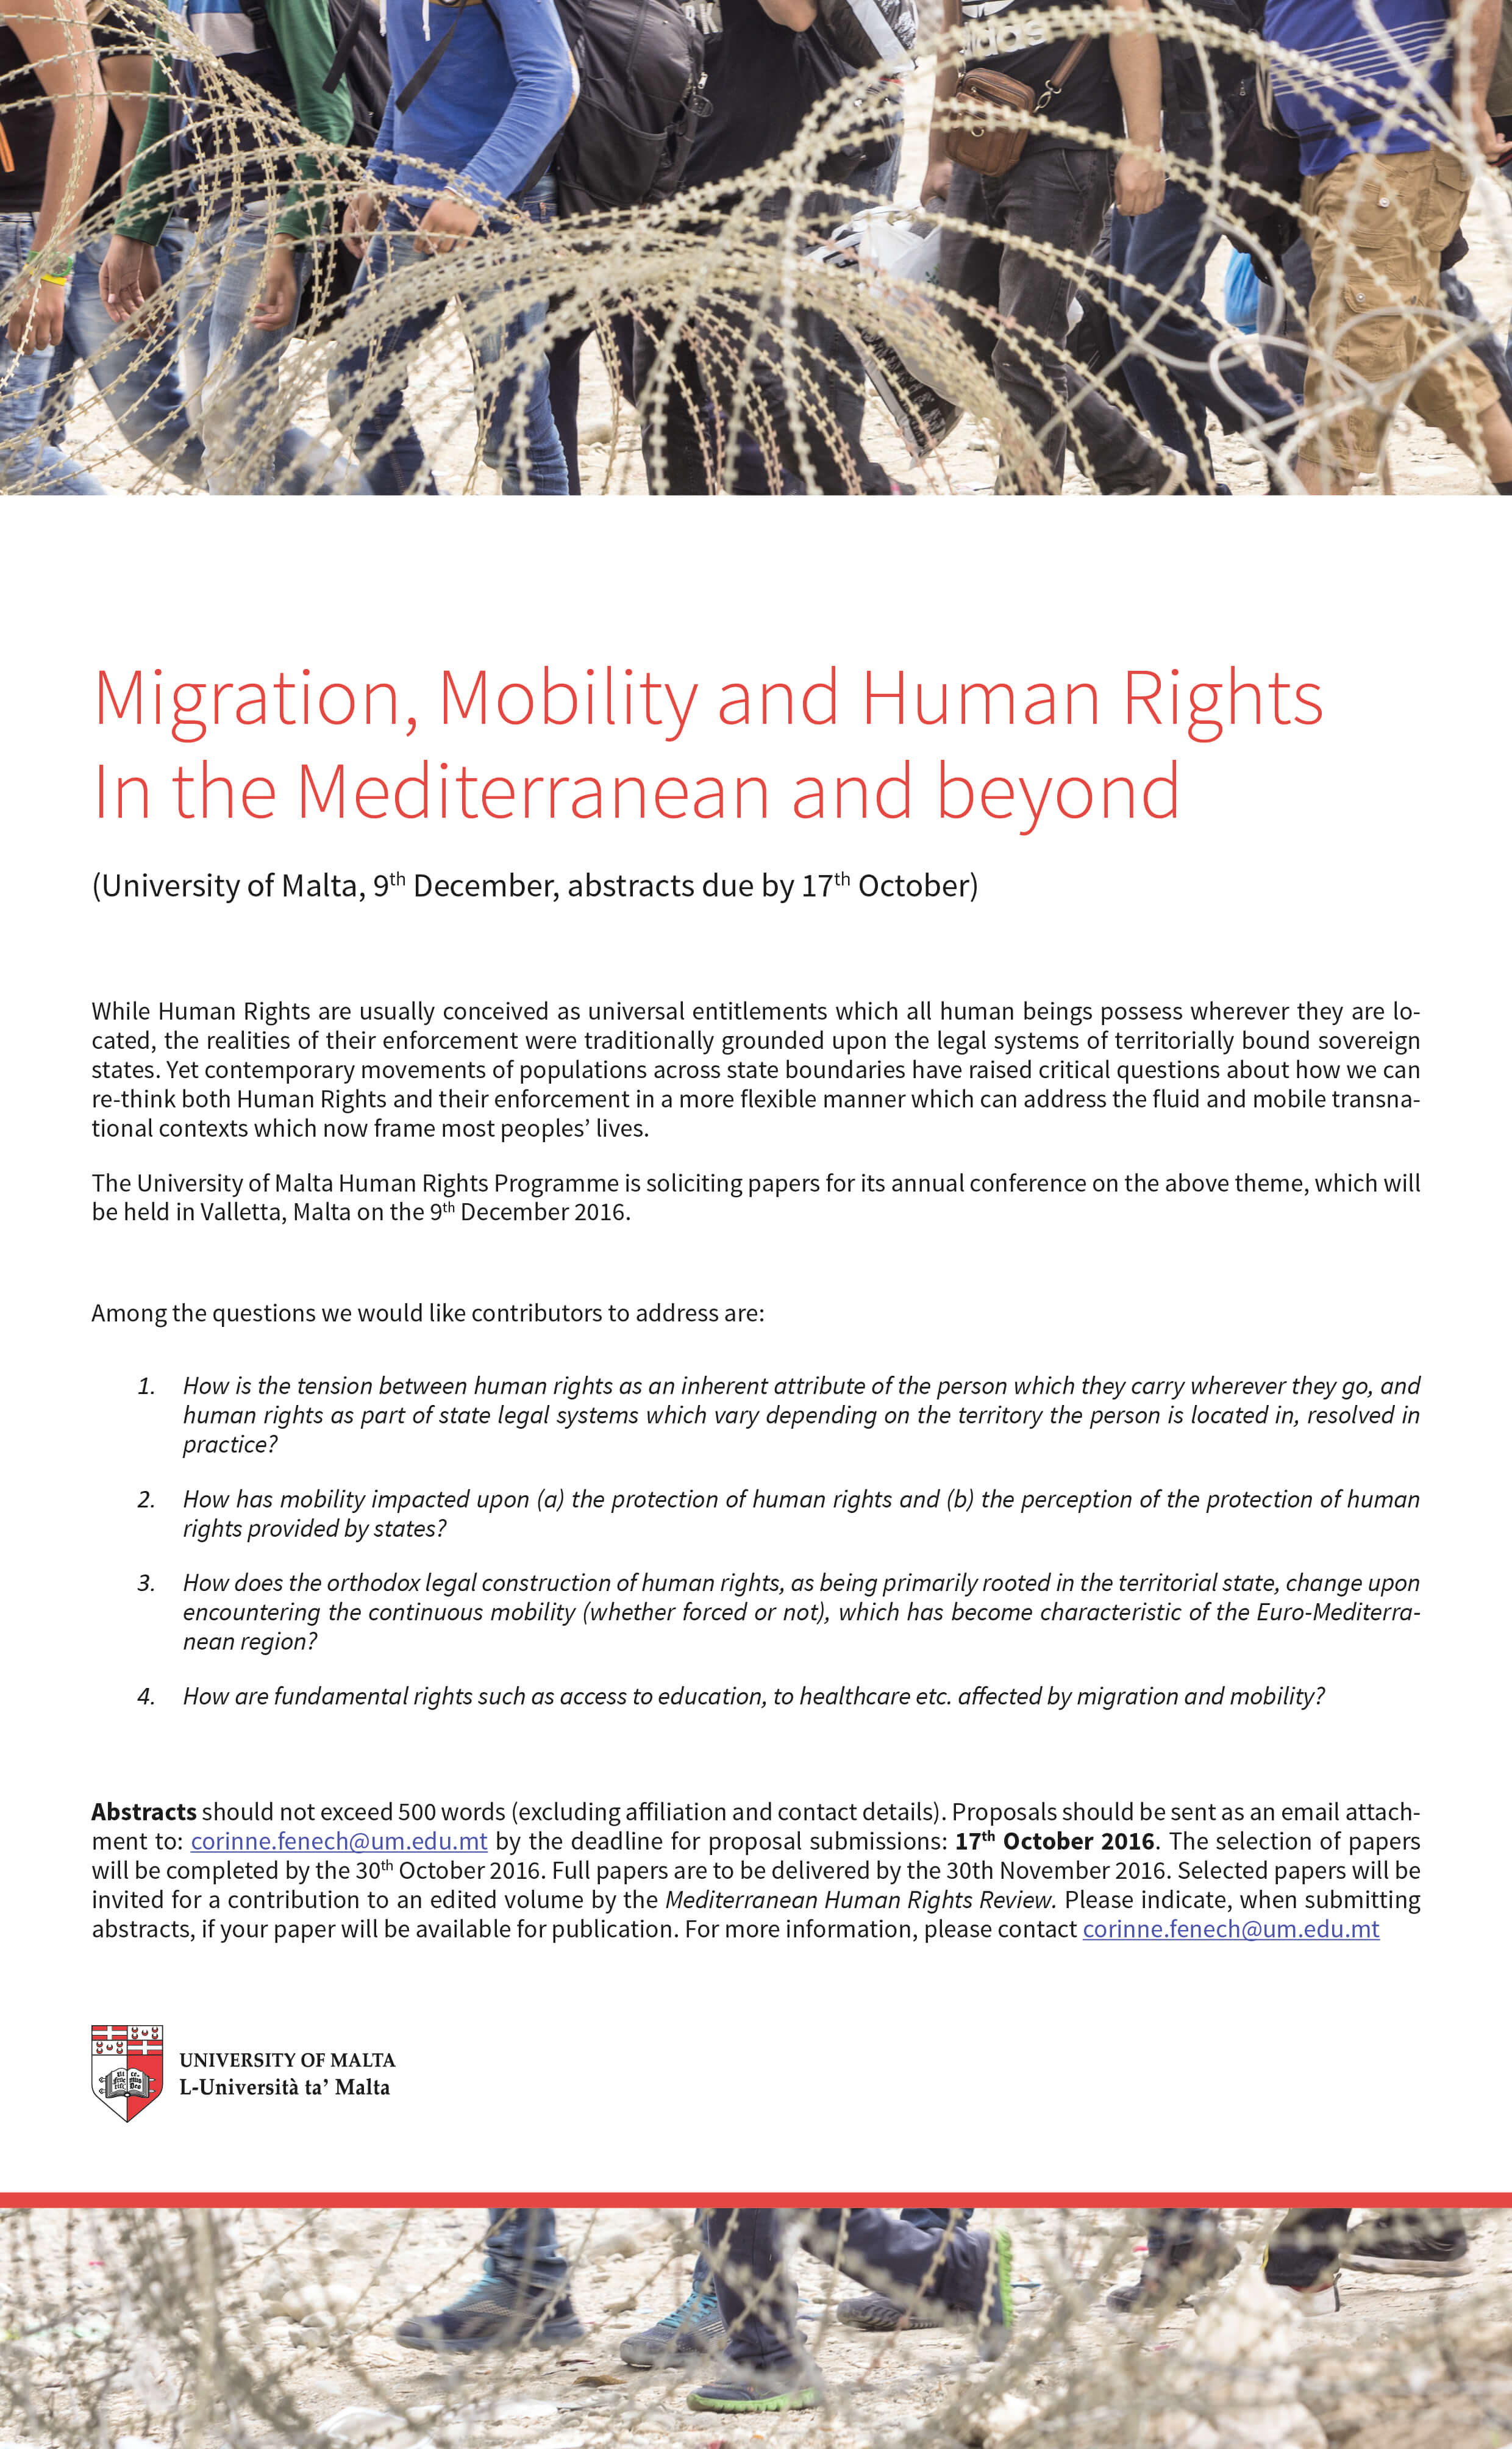 University of Malta: Migration, Mobility and Human Right Conference